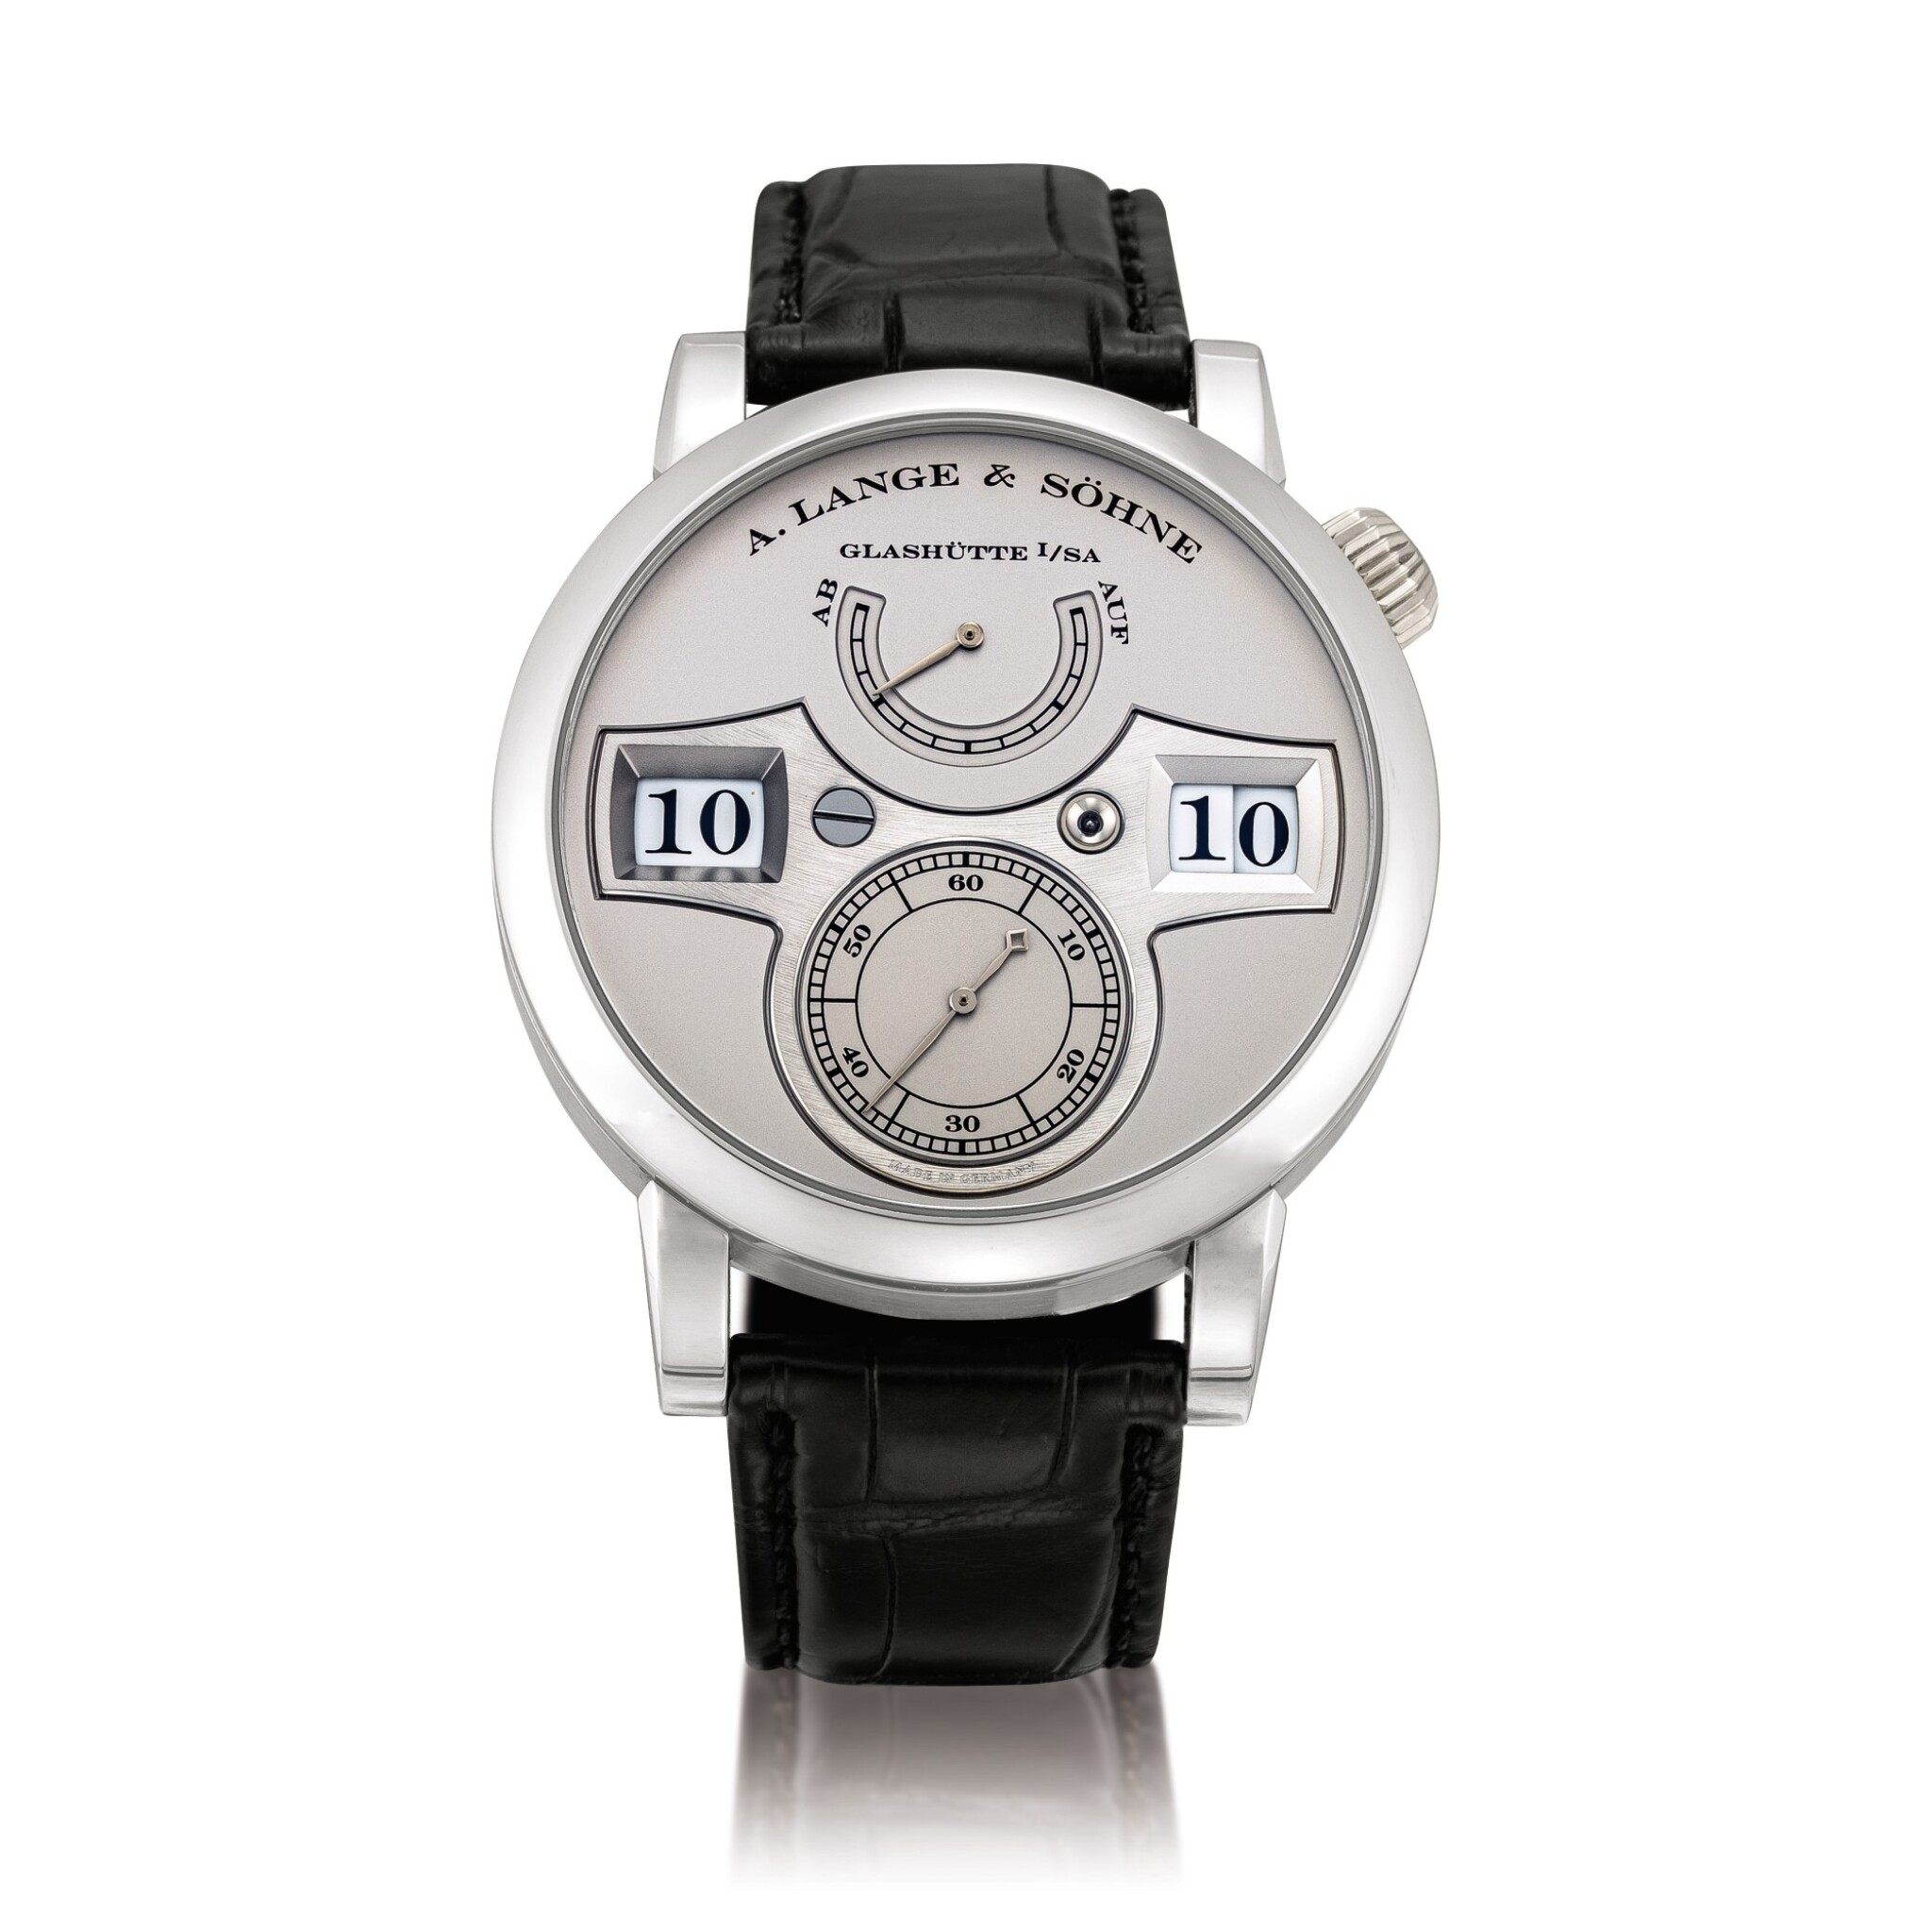 View full screen - View 1 of Lot 2021. A. Lange & Söhne | Zeitwerk, Reference 140.025, A limited edition platinum wristwatch with digital time display and power reserve indication, Circa 2009 | 朗格 | Zeitwerk 型號140.025 限量版鉑金腕錶,備跳字及動力儲備顯示,約2009年製.